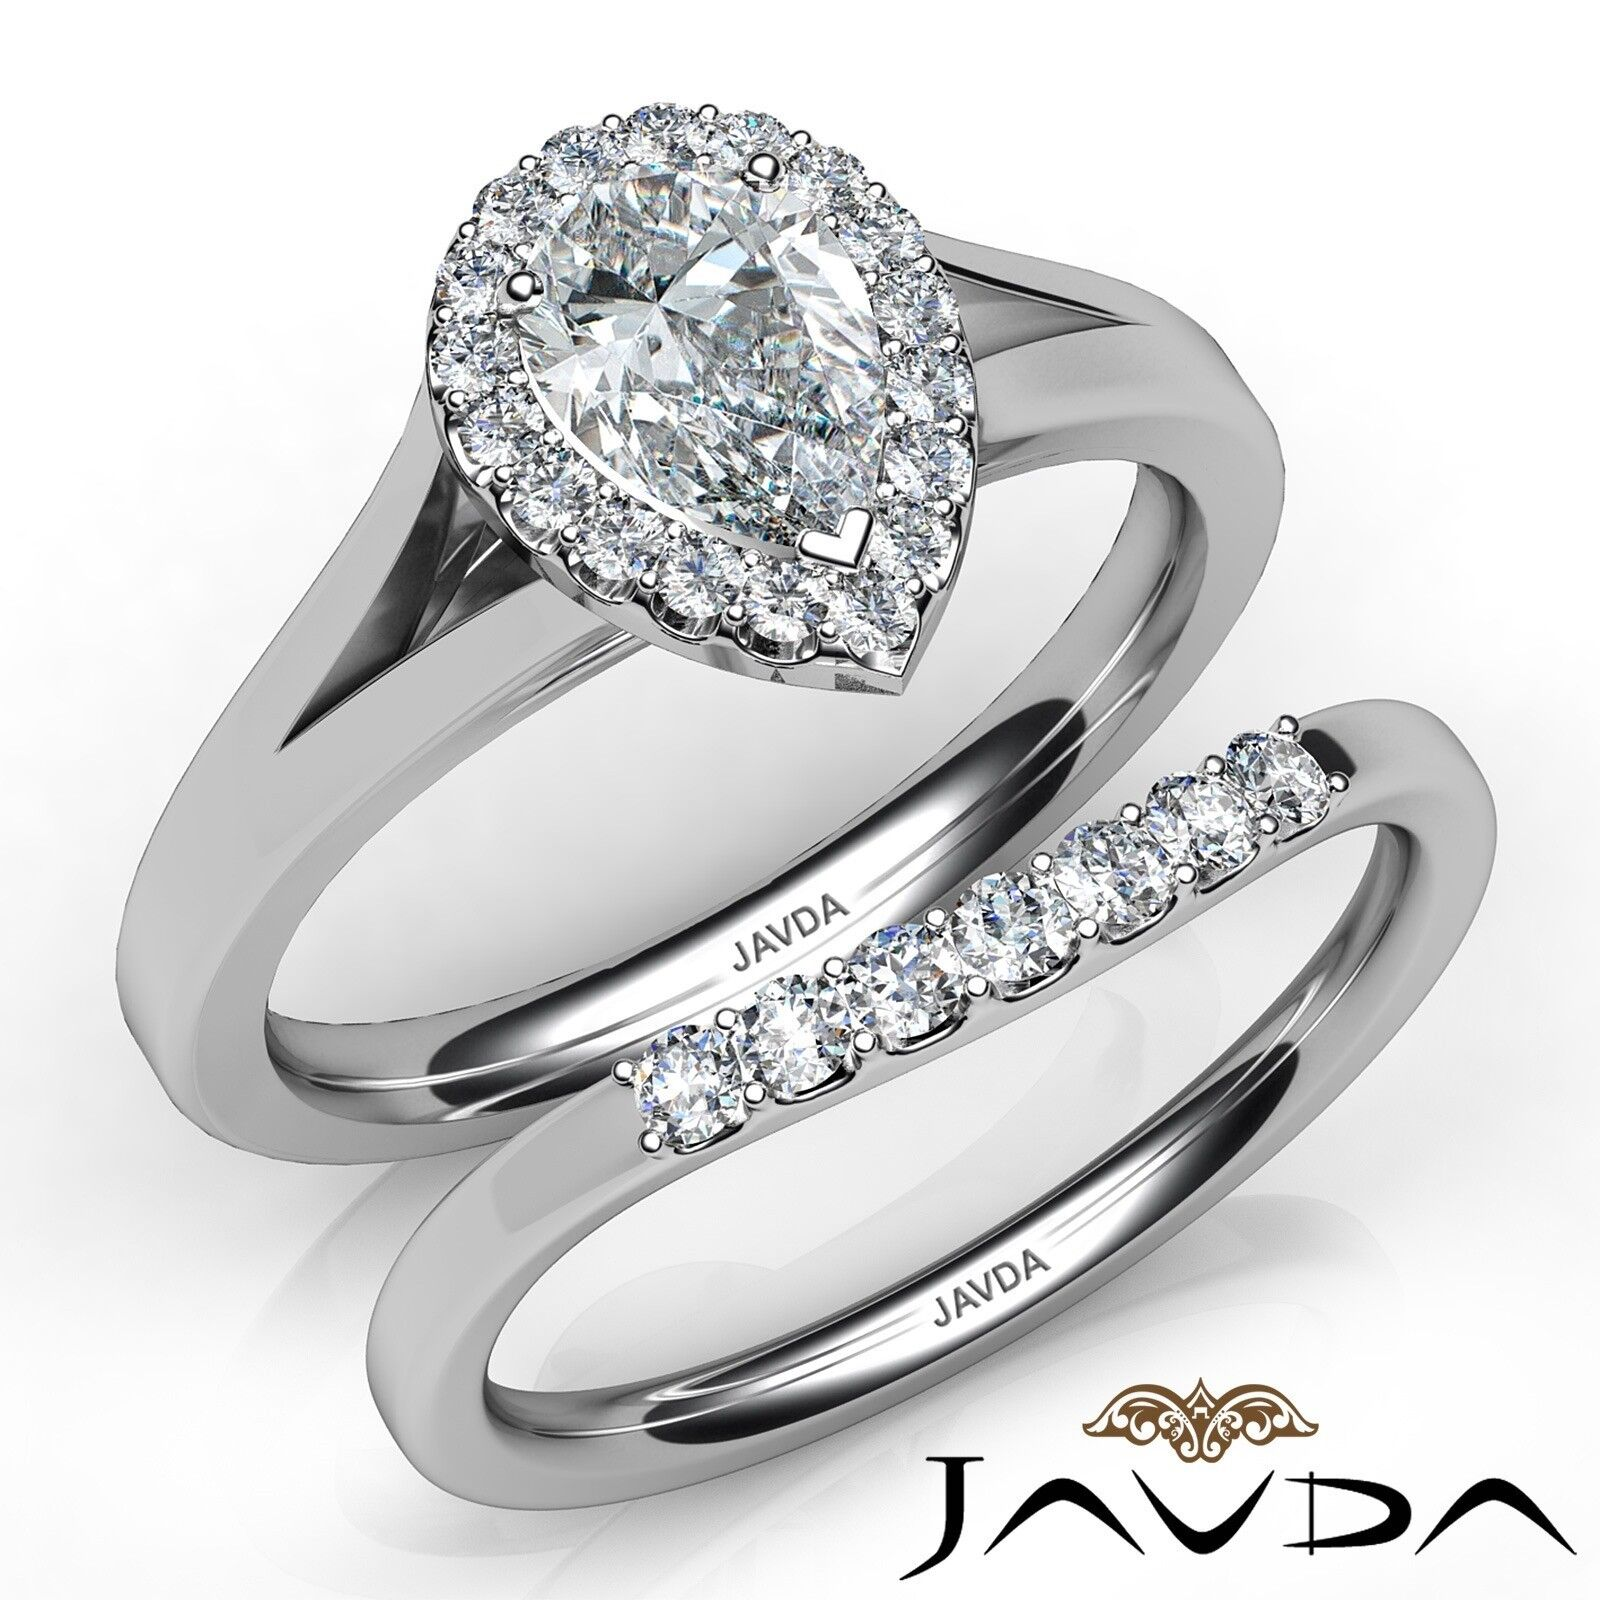 1.4ctw Halo Bridal Set Cathedral Pear Diamond Engagement Ring GIA I-SI2 W Gold